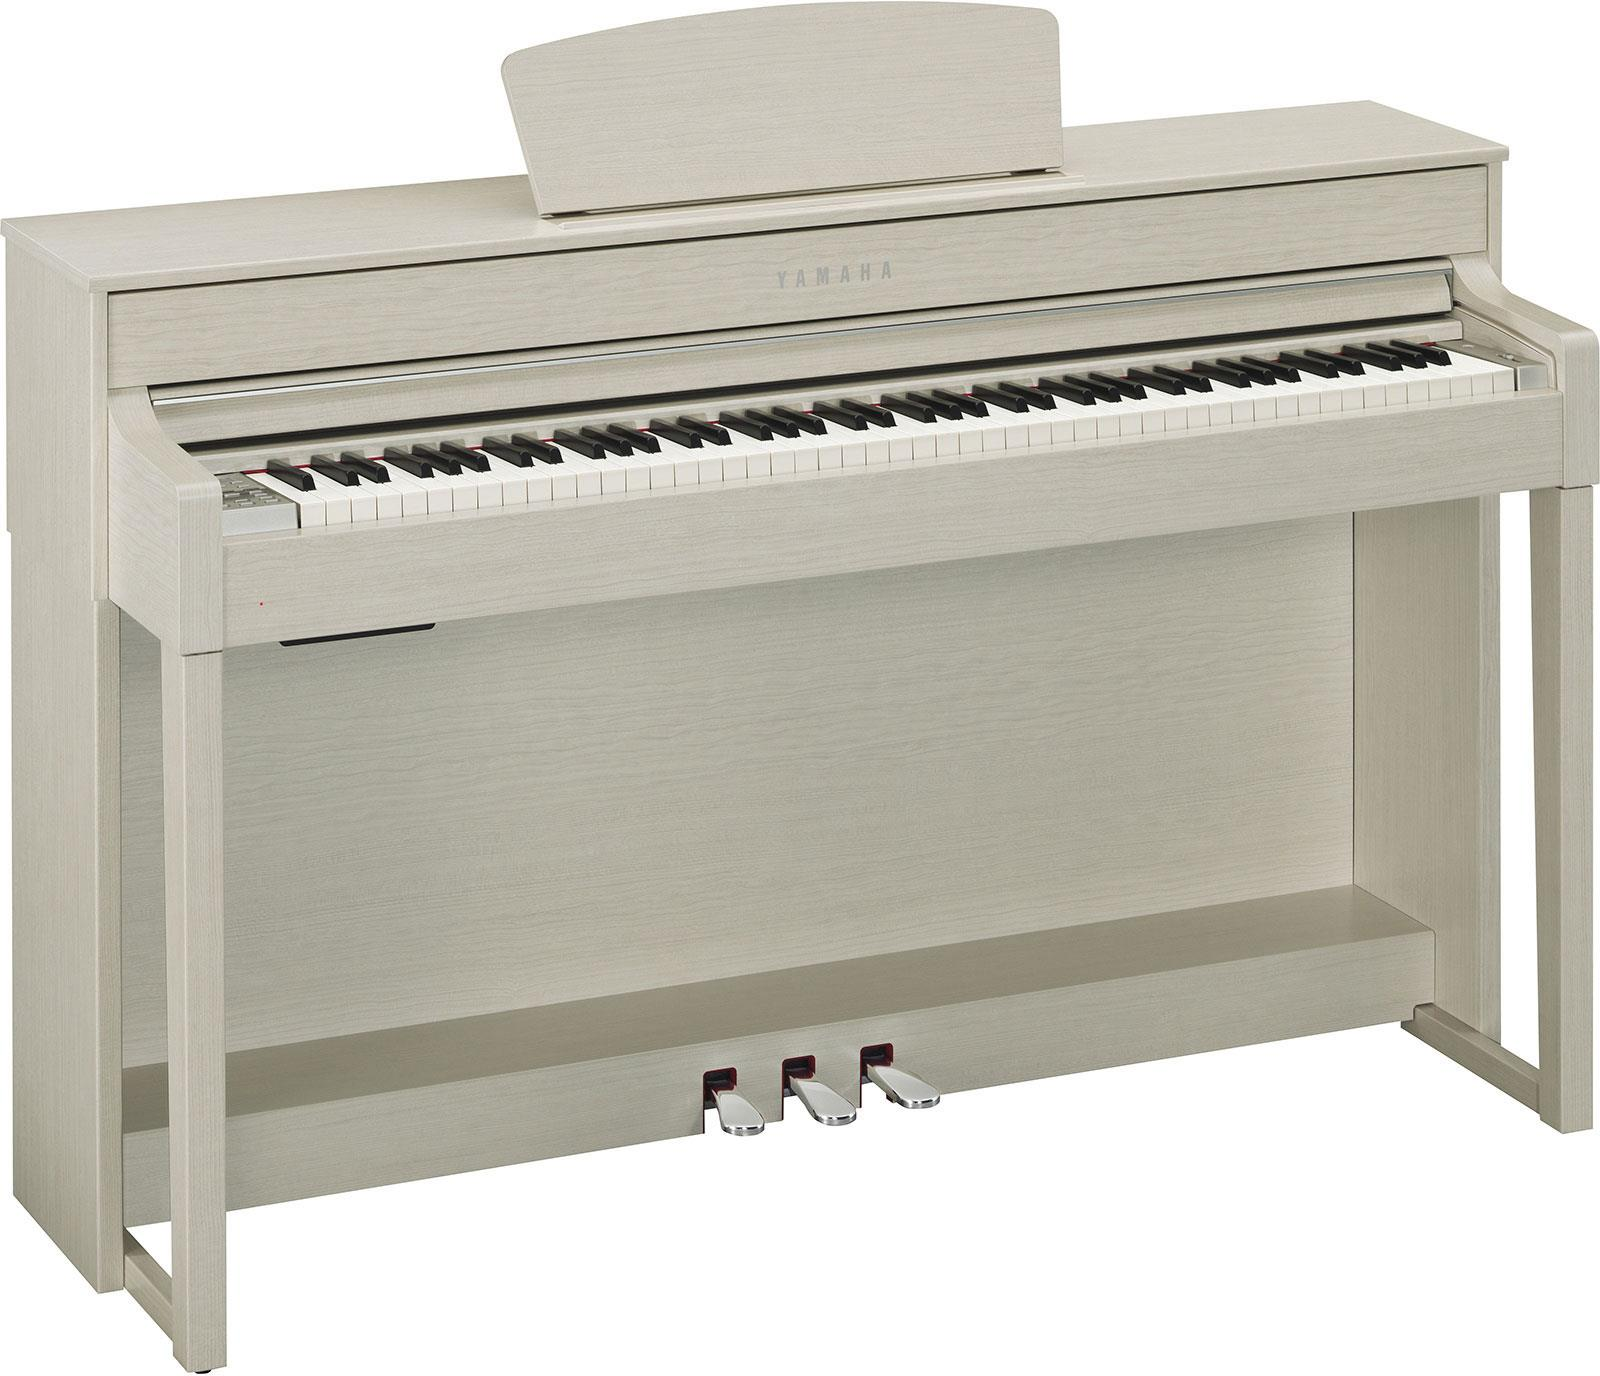 yamaha clp535wa clavinova white ash keymusic. Black Bedroom Furniture Sets. Home Design Ideas